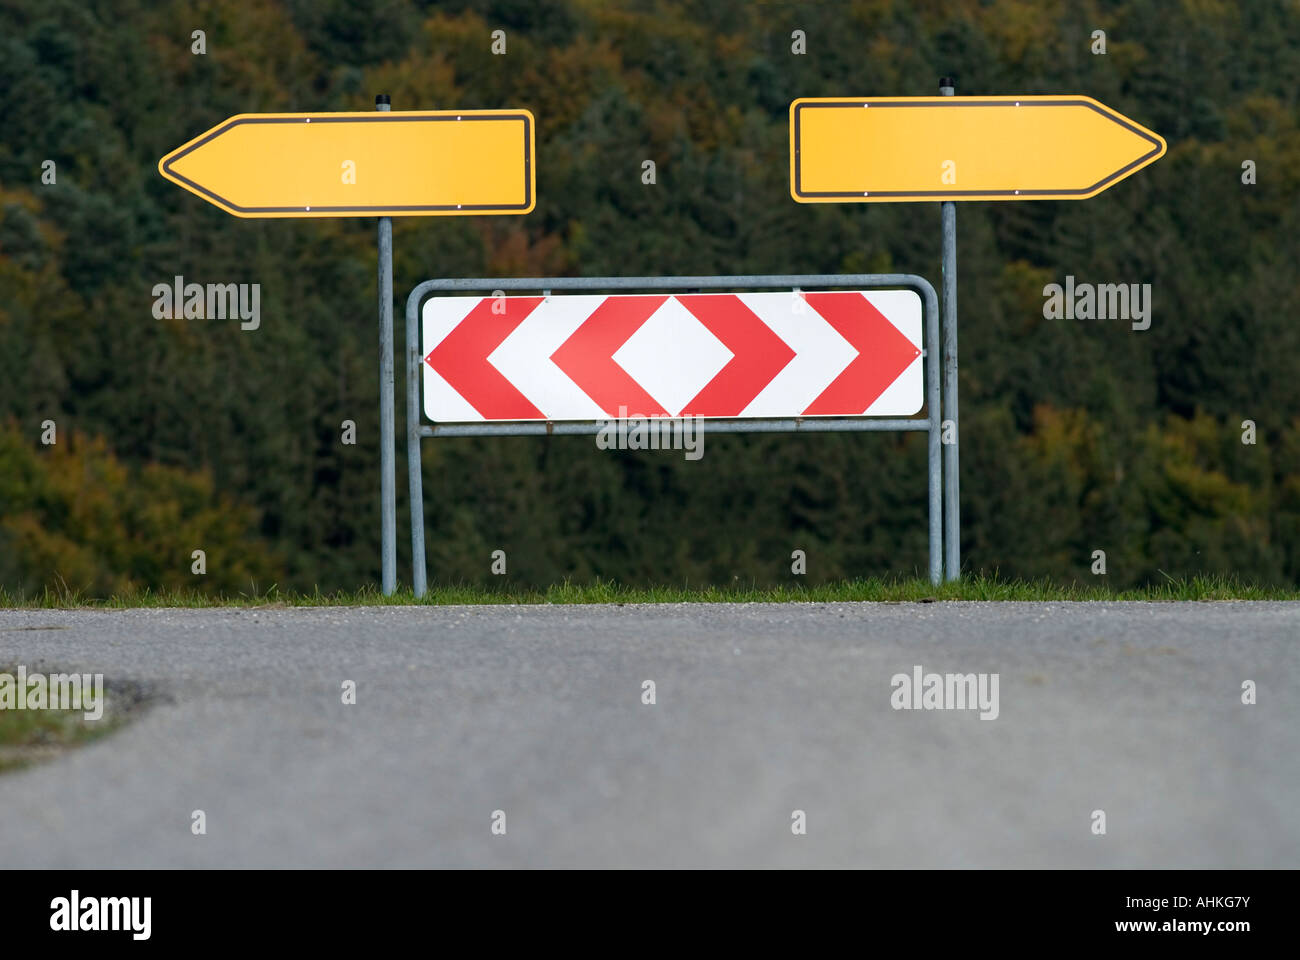 traffic sign arrows pointing left and right Germany Stock